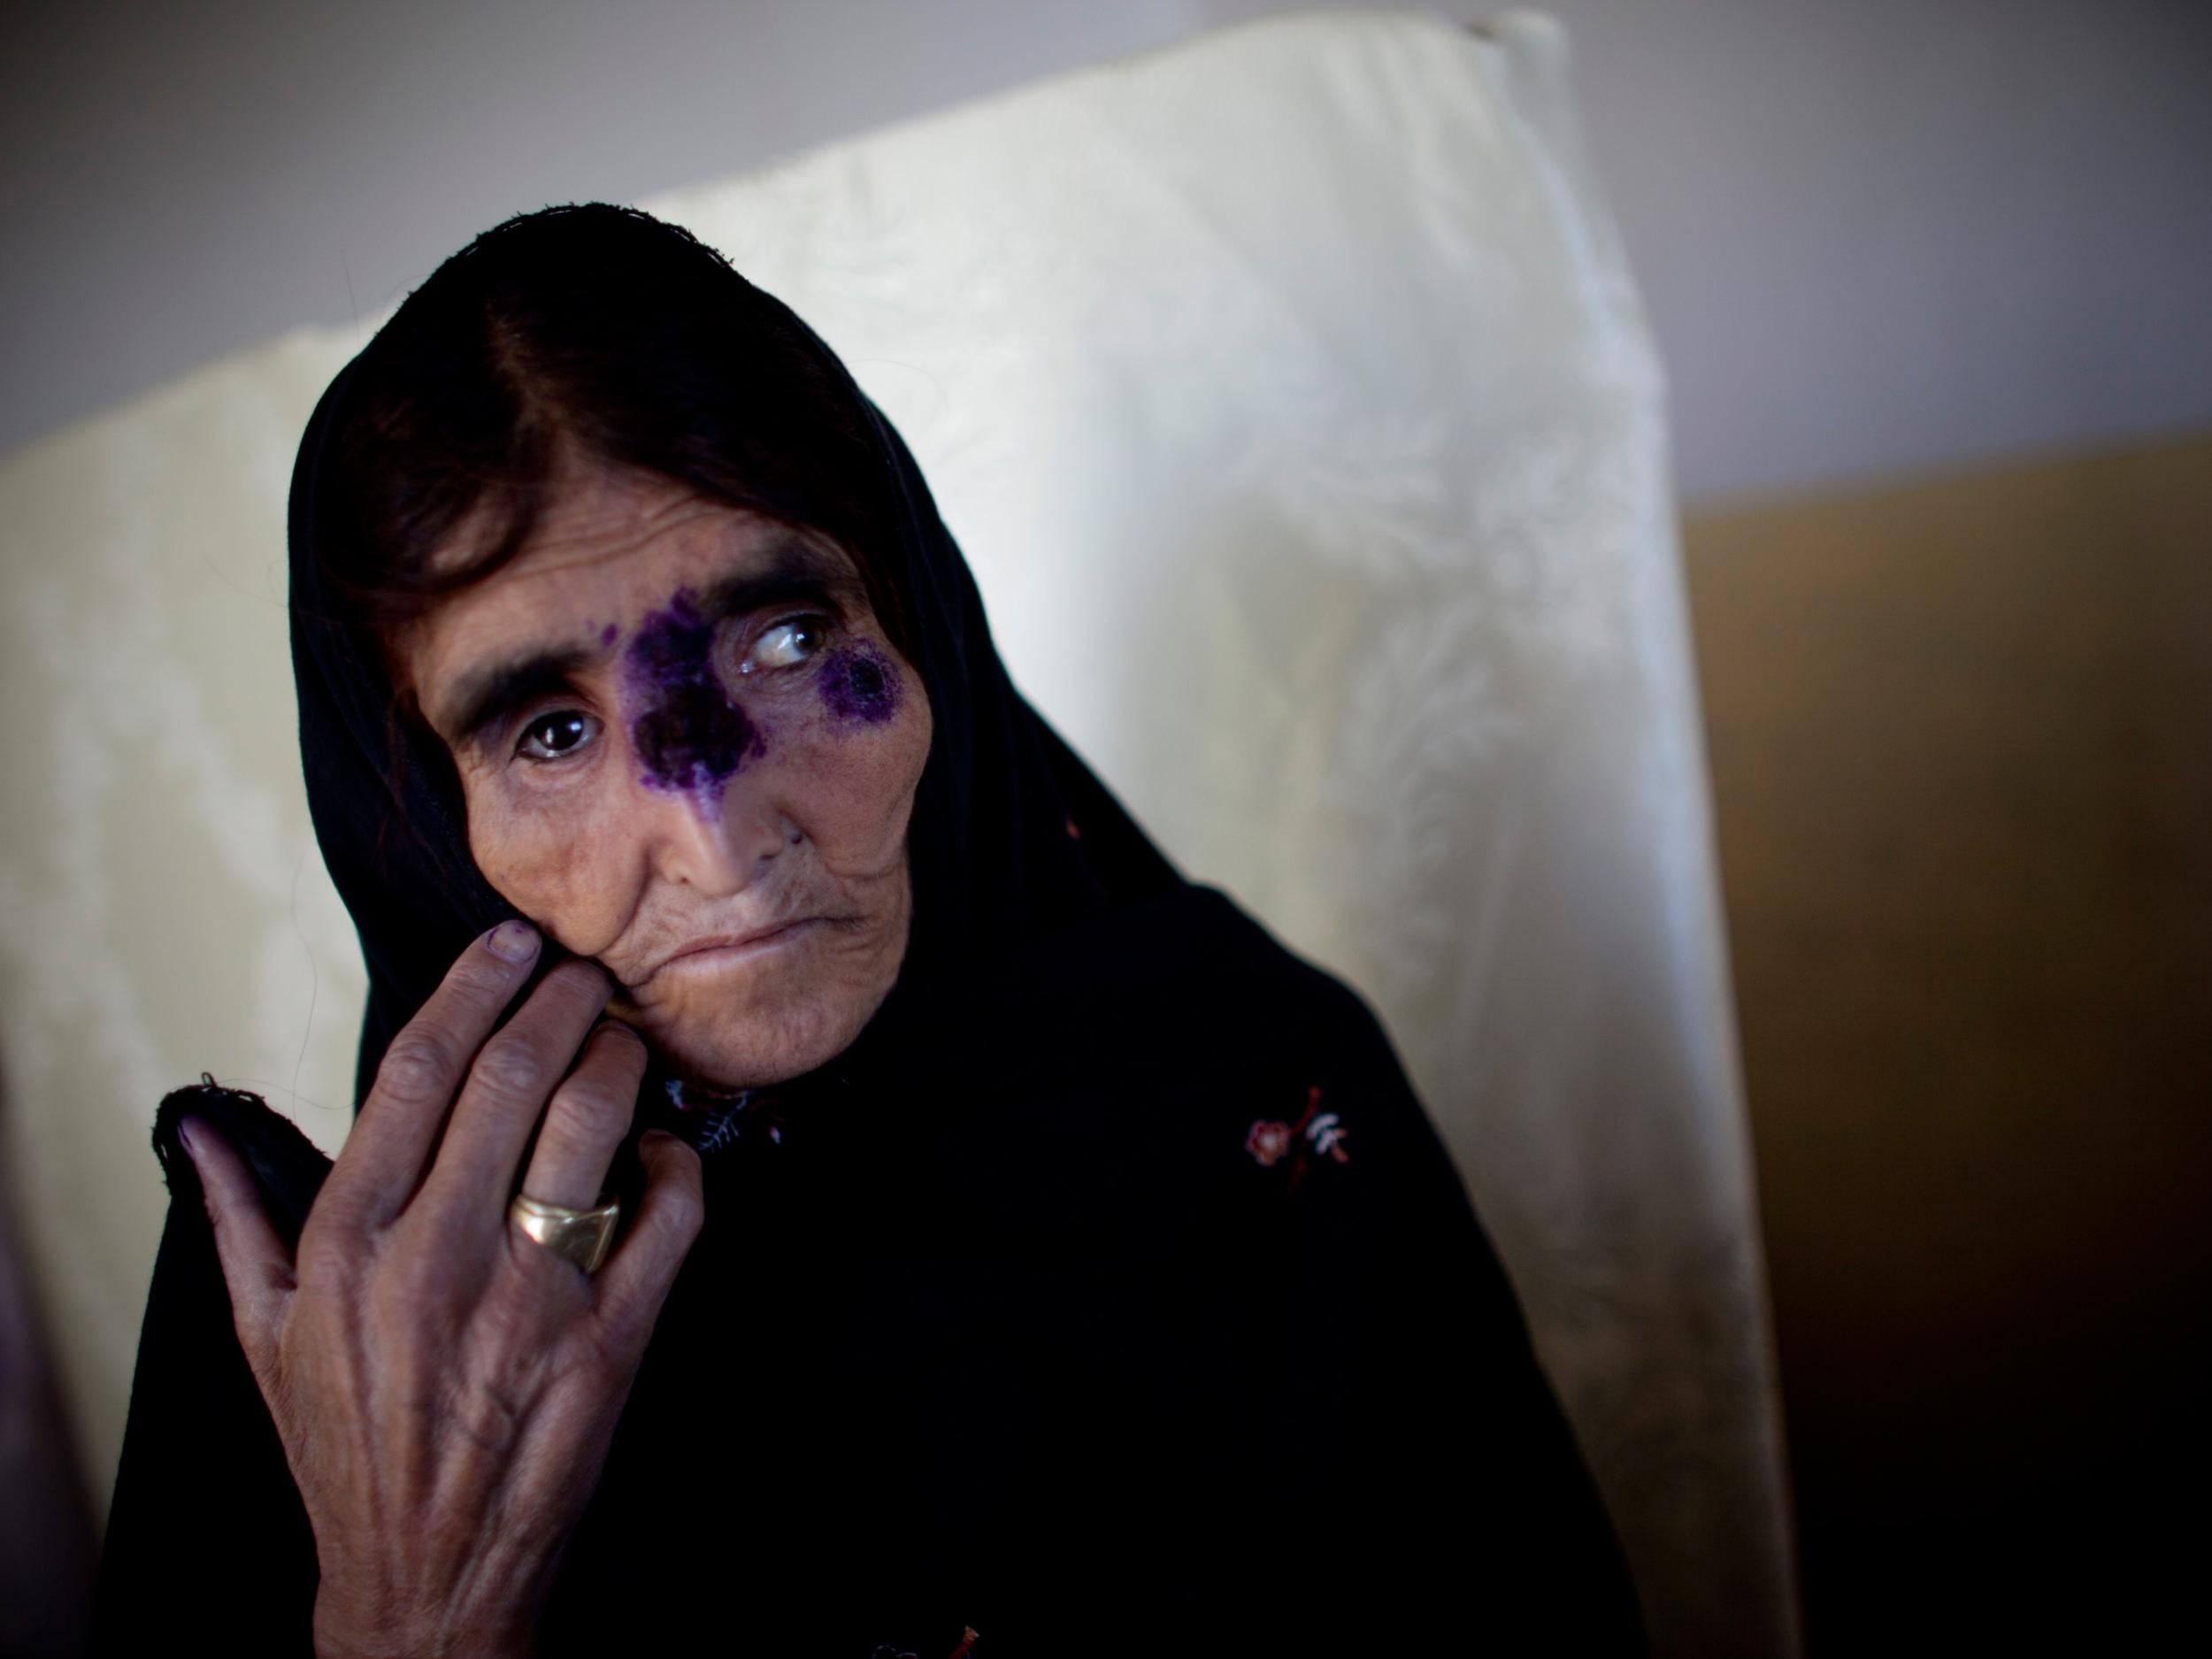 skin disease dating The woman reportedly developed symptoms of the disease and said she feels her health and body  infants can pick up a herpes infection from skin-to-skin or mouth.